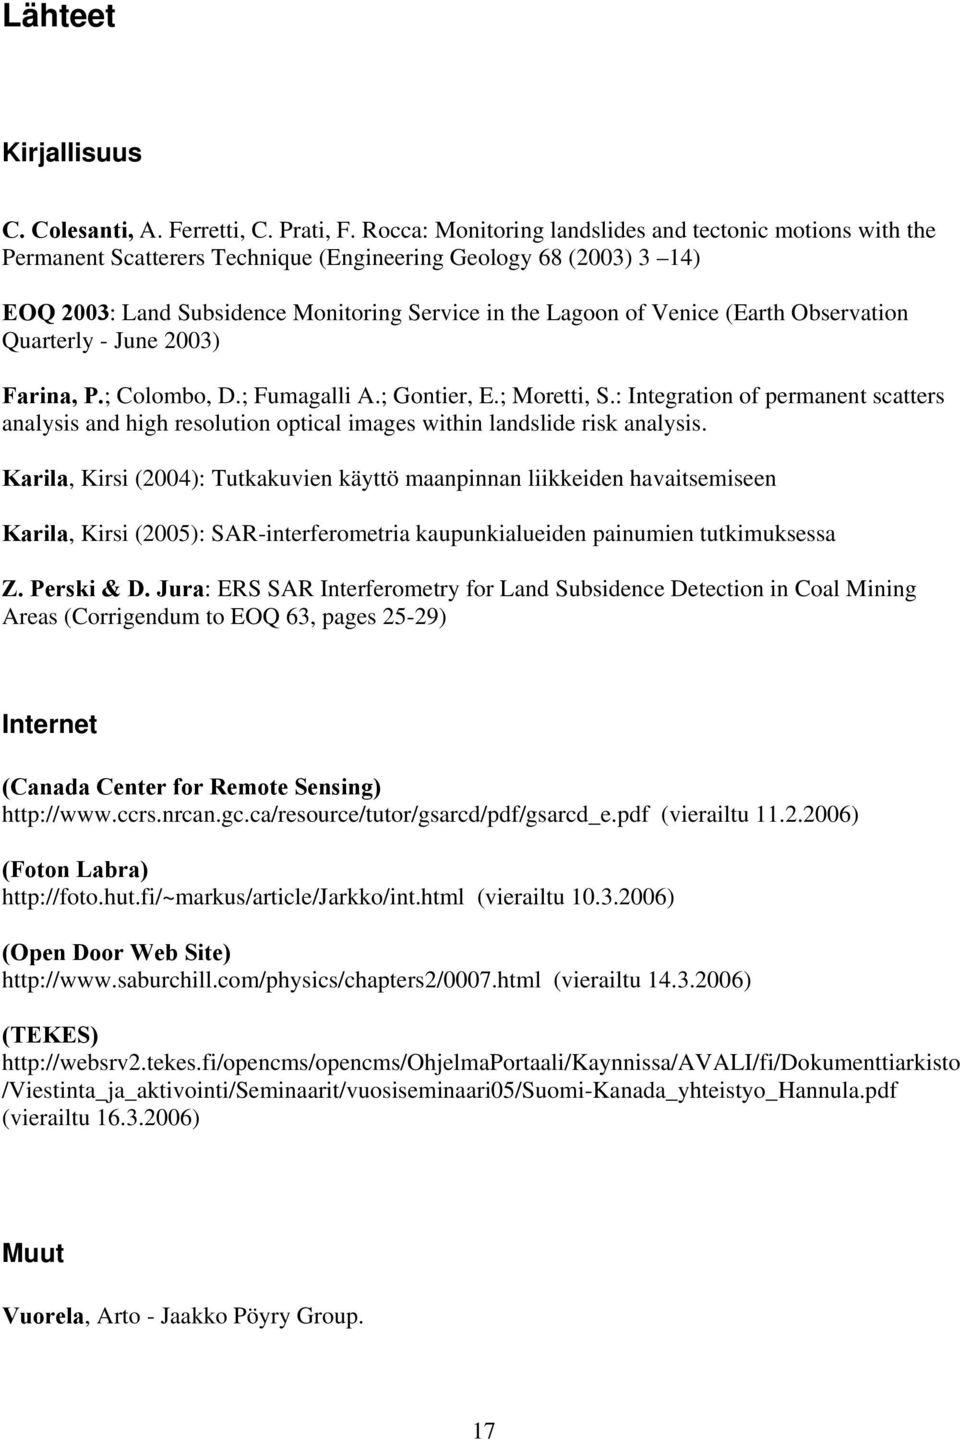 (Earth Observation Quarterly - June 2003) Farina, P.; Colombo, D.; Fumagalli A.; Gontier, E.; Moretti, S.